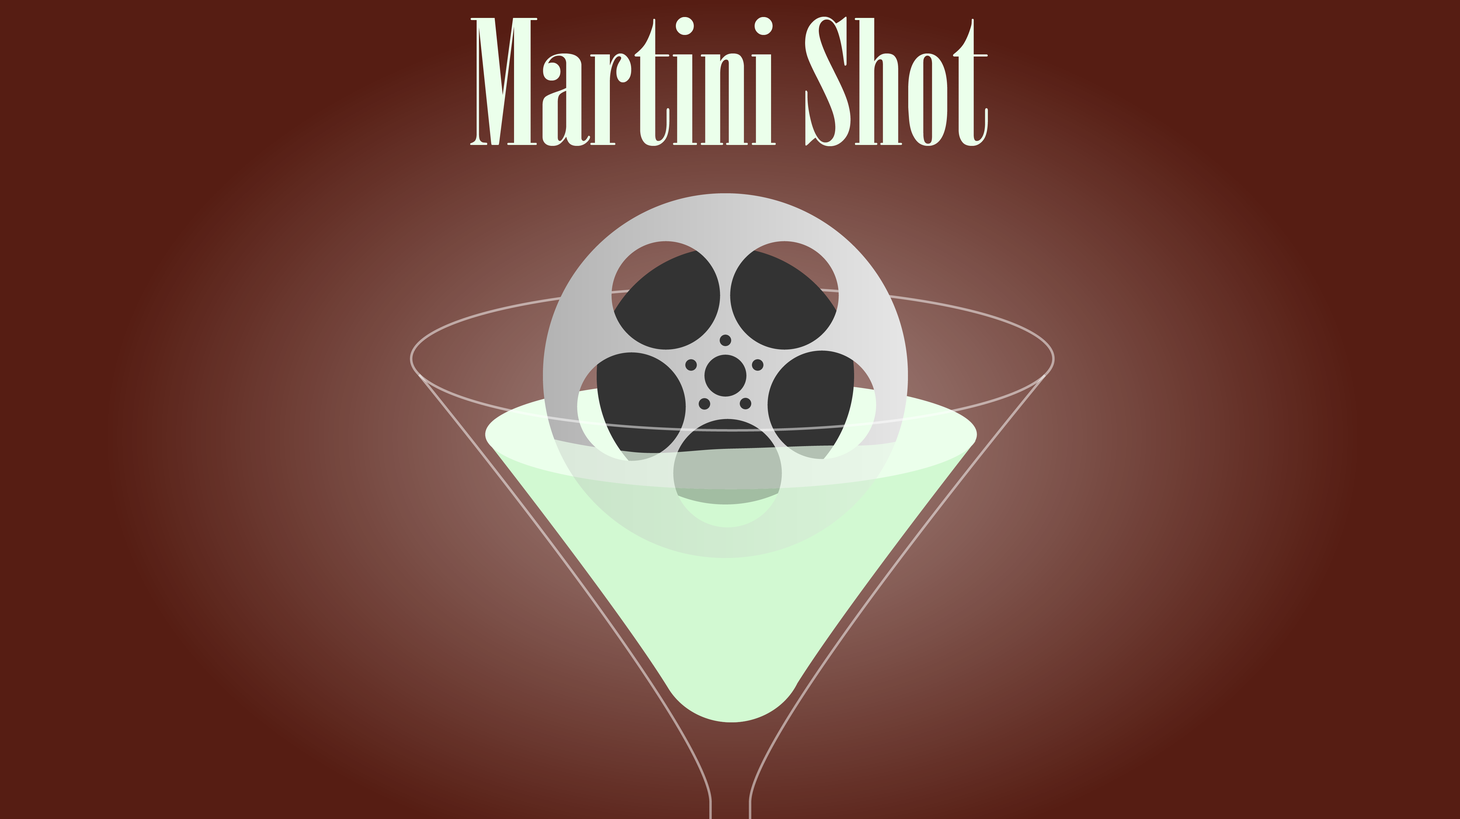 This is Rob Long and on today's Martini Shot I describe the classic pose of the buyer and the seller: one person leaning forward at the table, the other leaning back, arms folded. Always know which one you are.